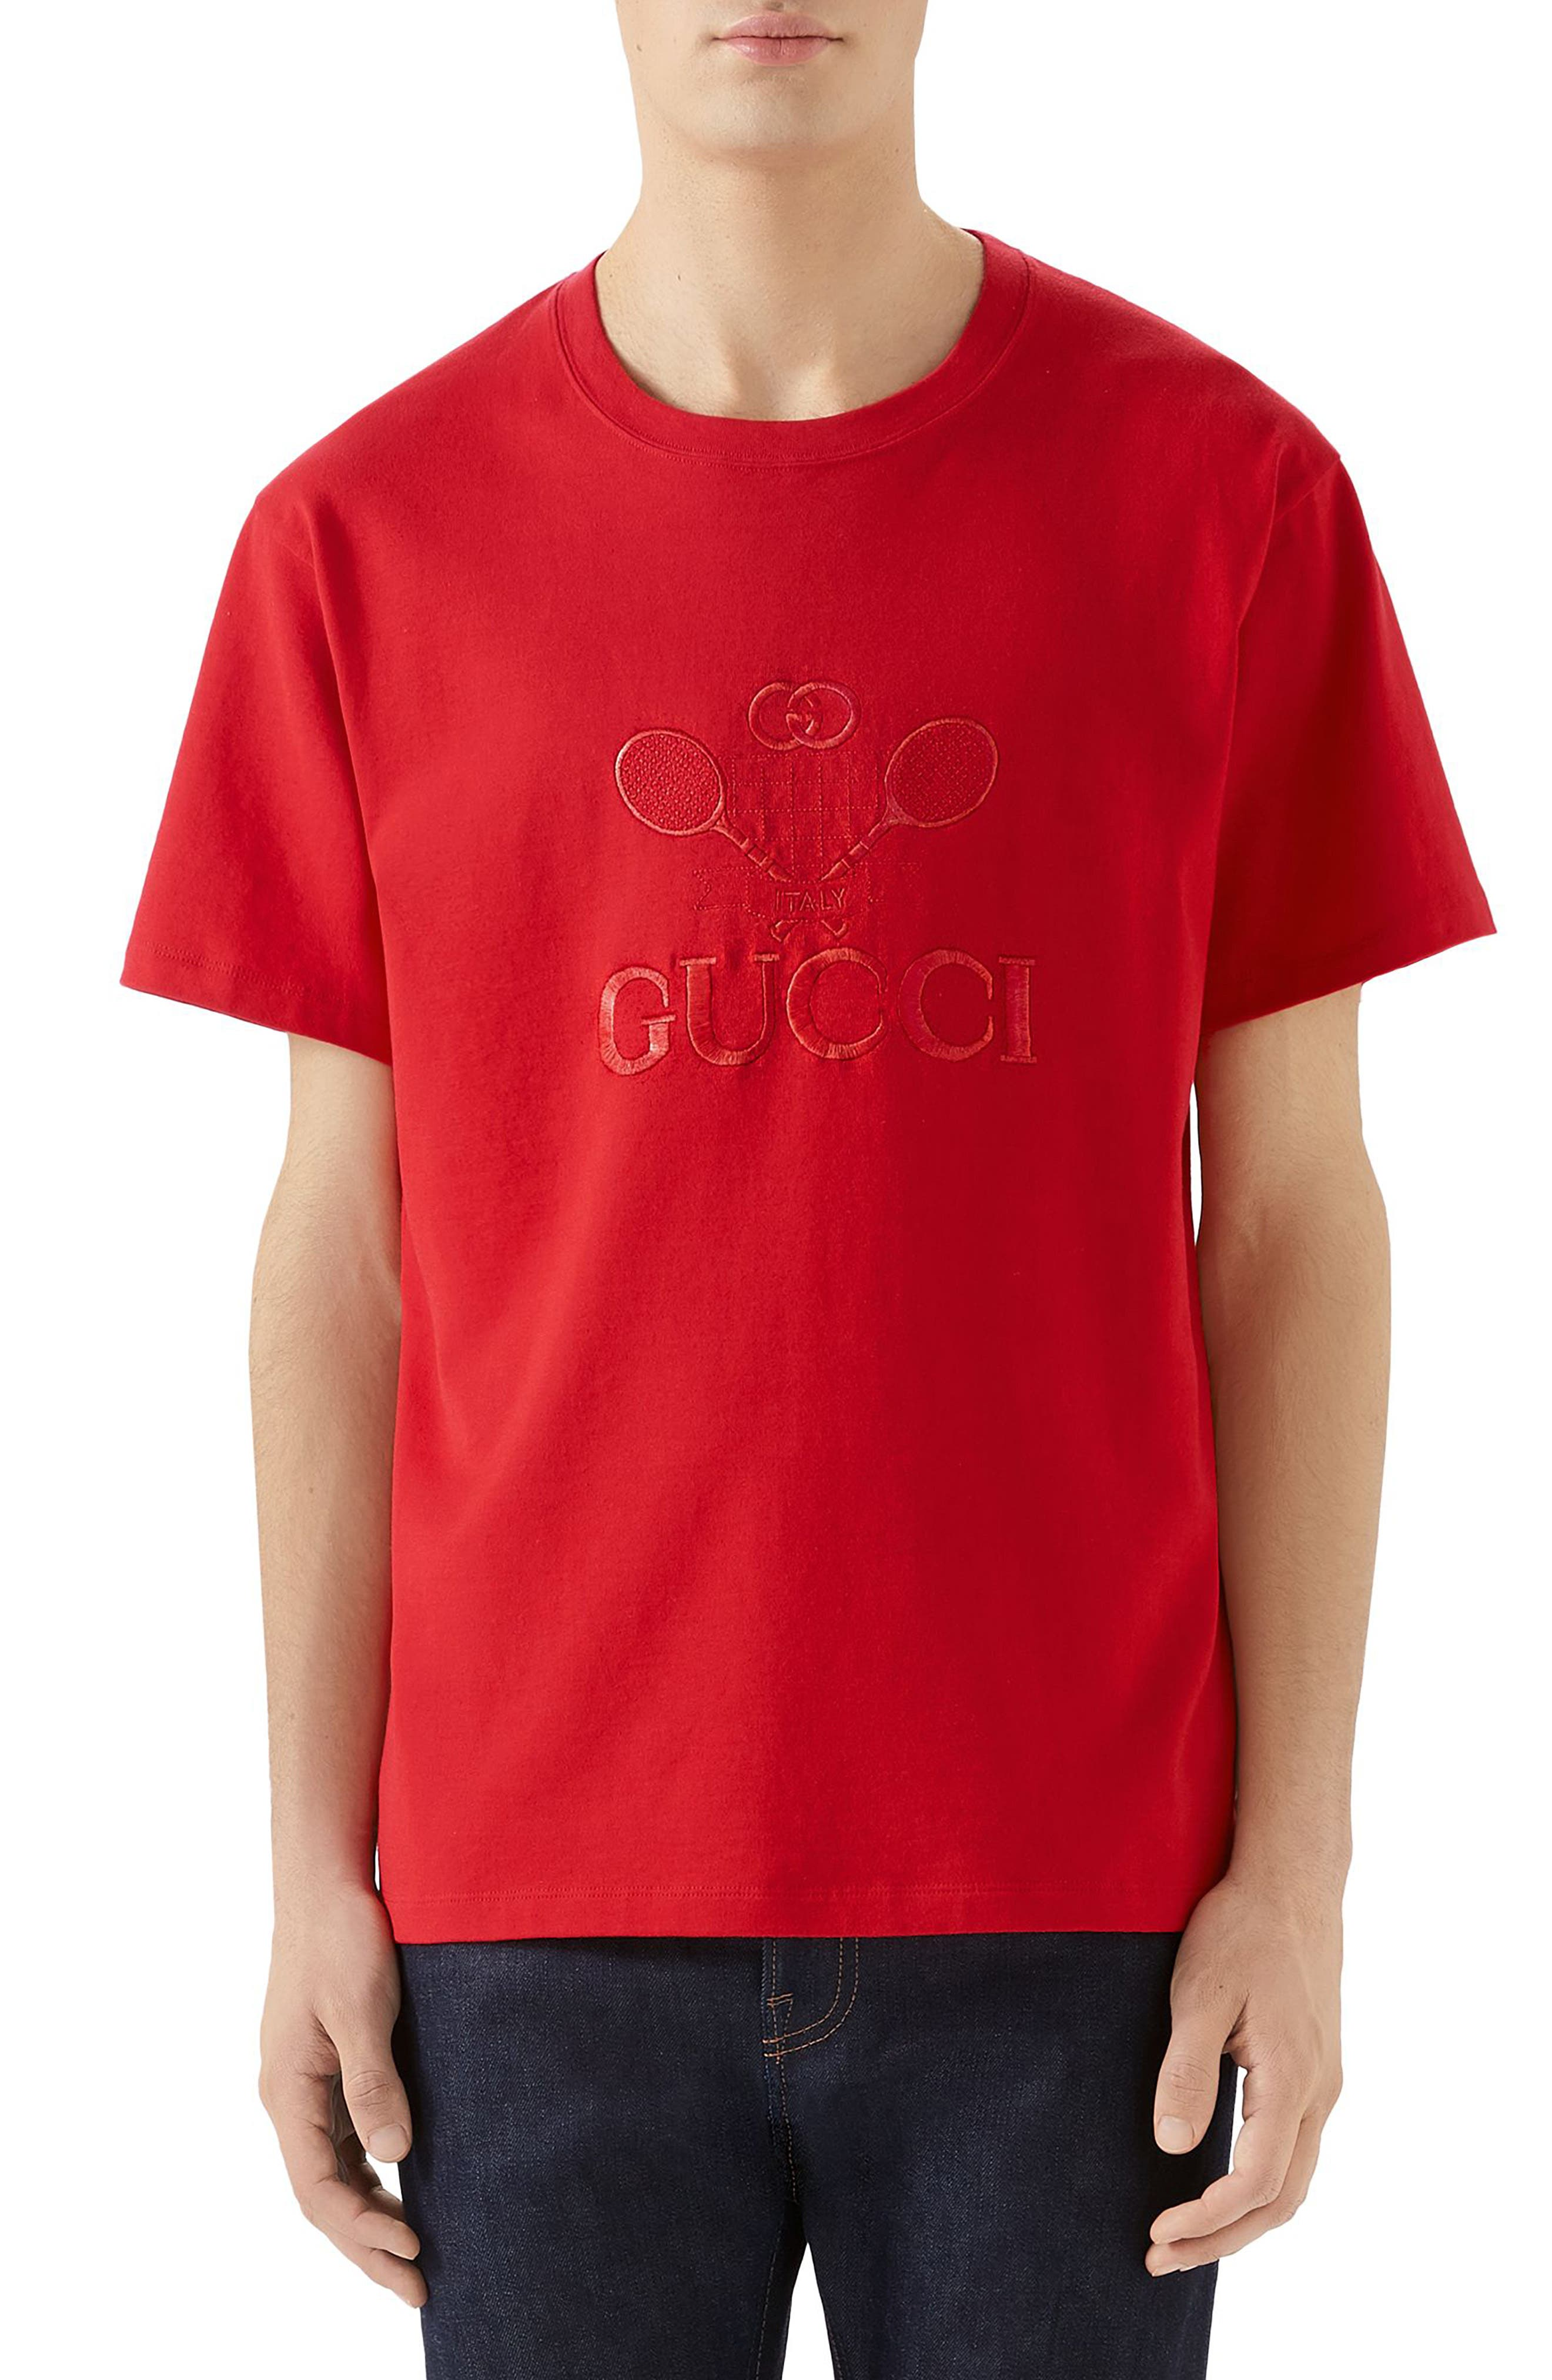 Tennis Embroidered Cotton T-Shirt, Main, color, LIVE RED